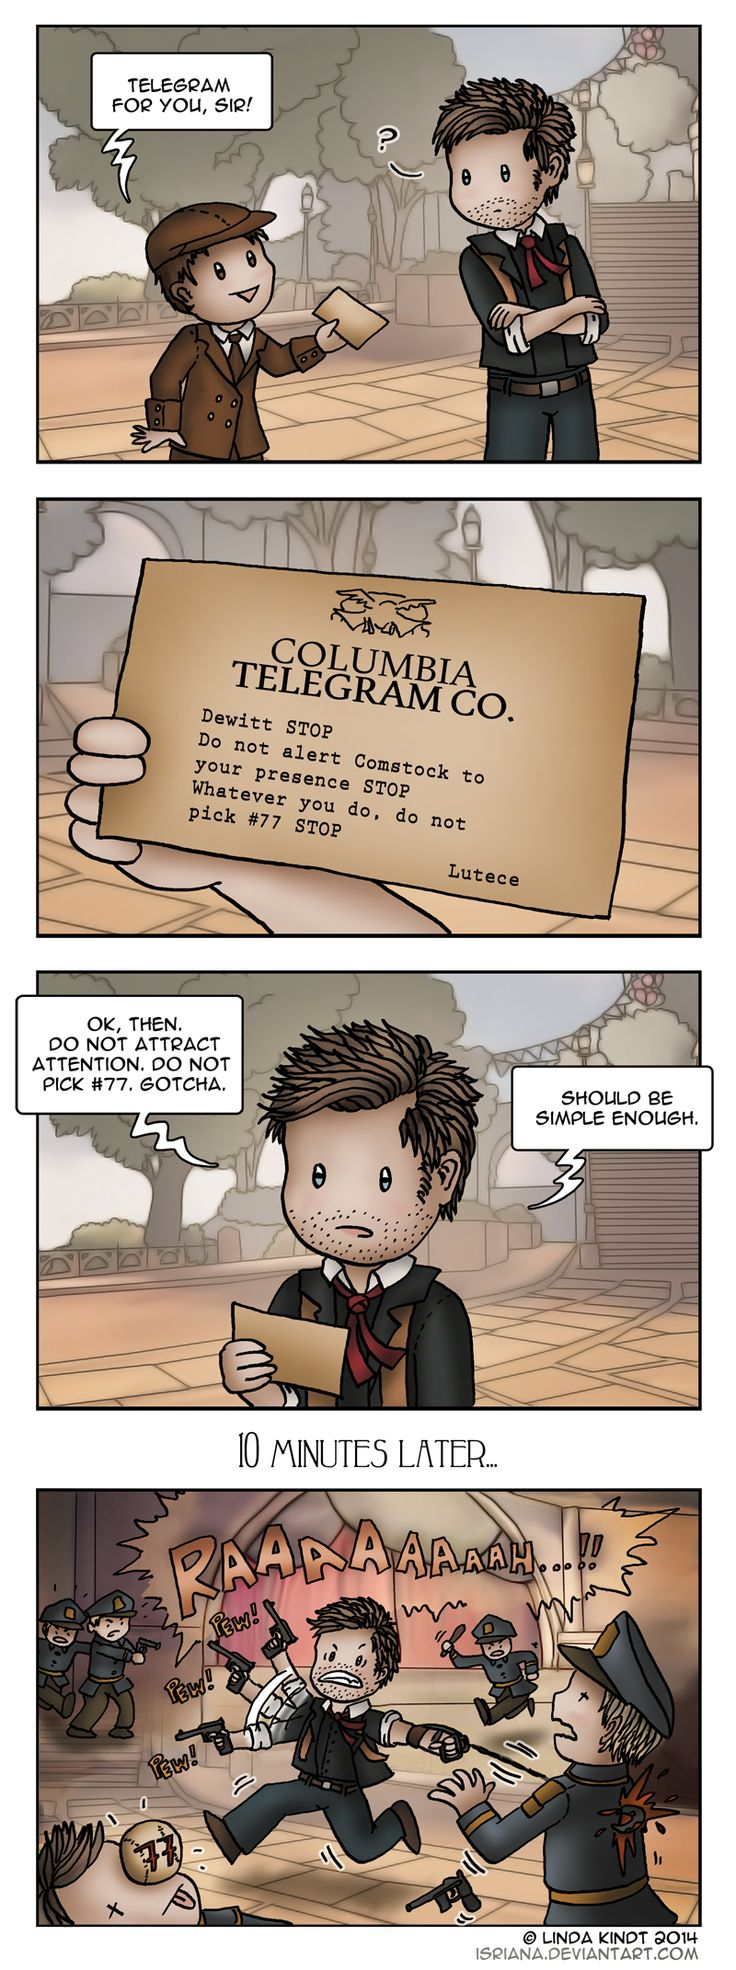 Bioshock Infinite: Low Profile by Isriana. So the question is...why didn't Booker listen to the telegram the Lutece Twins sent him?